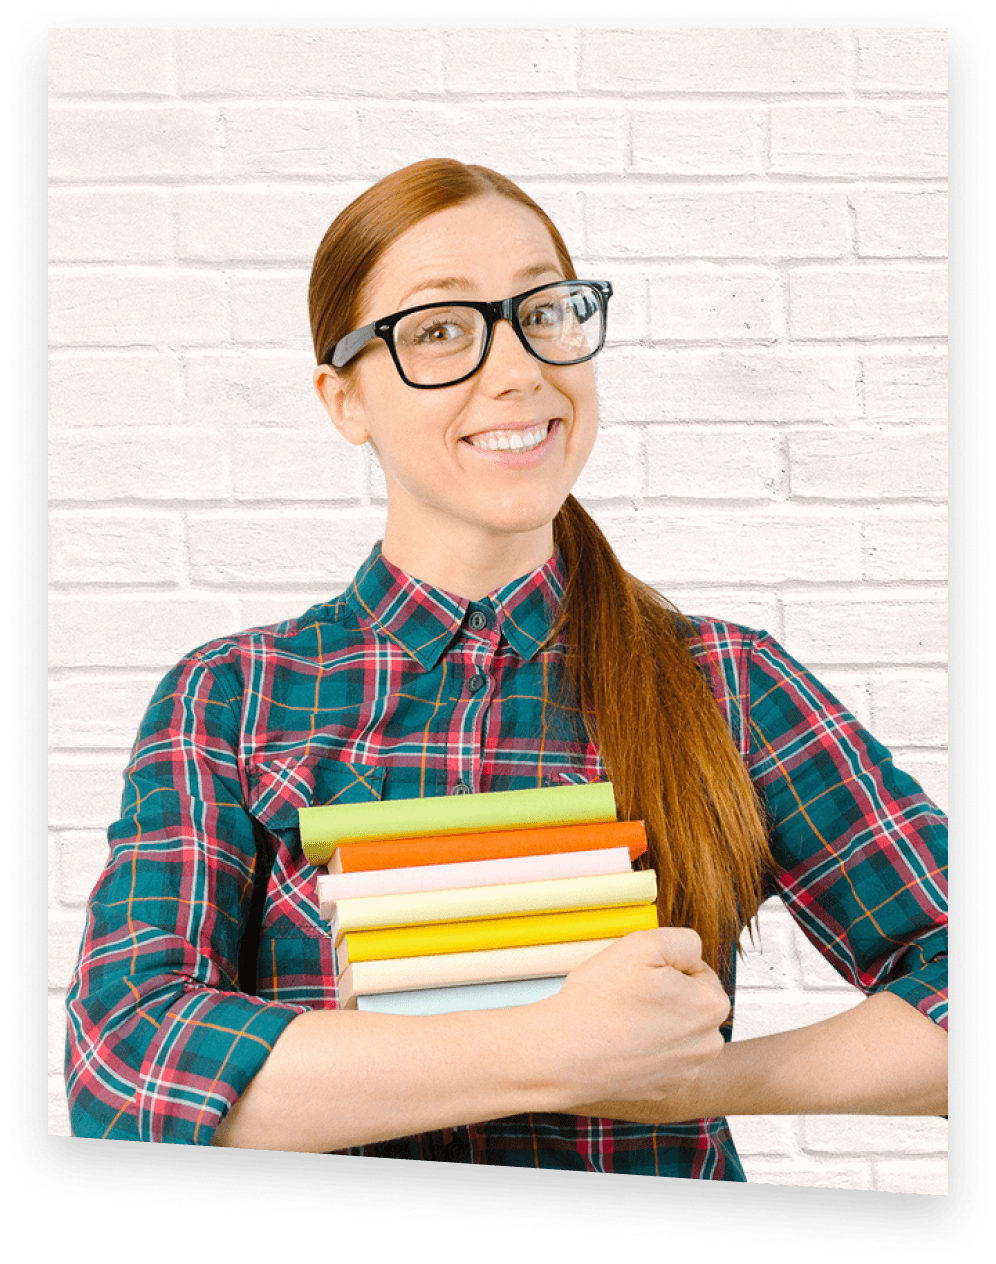 AP Prep tutor smiling, holding a stack of books with both arms